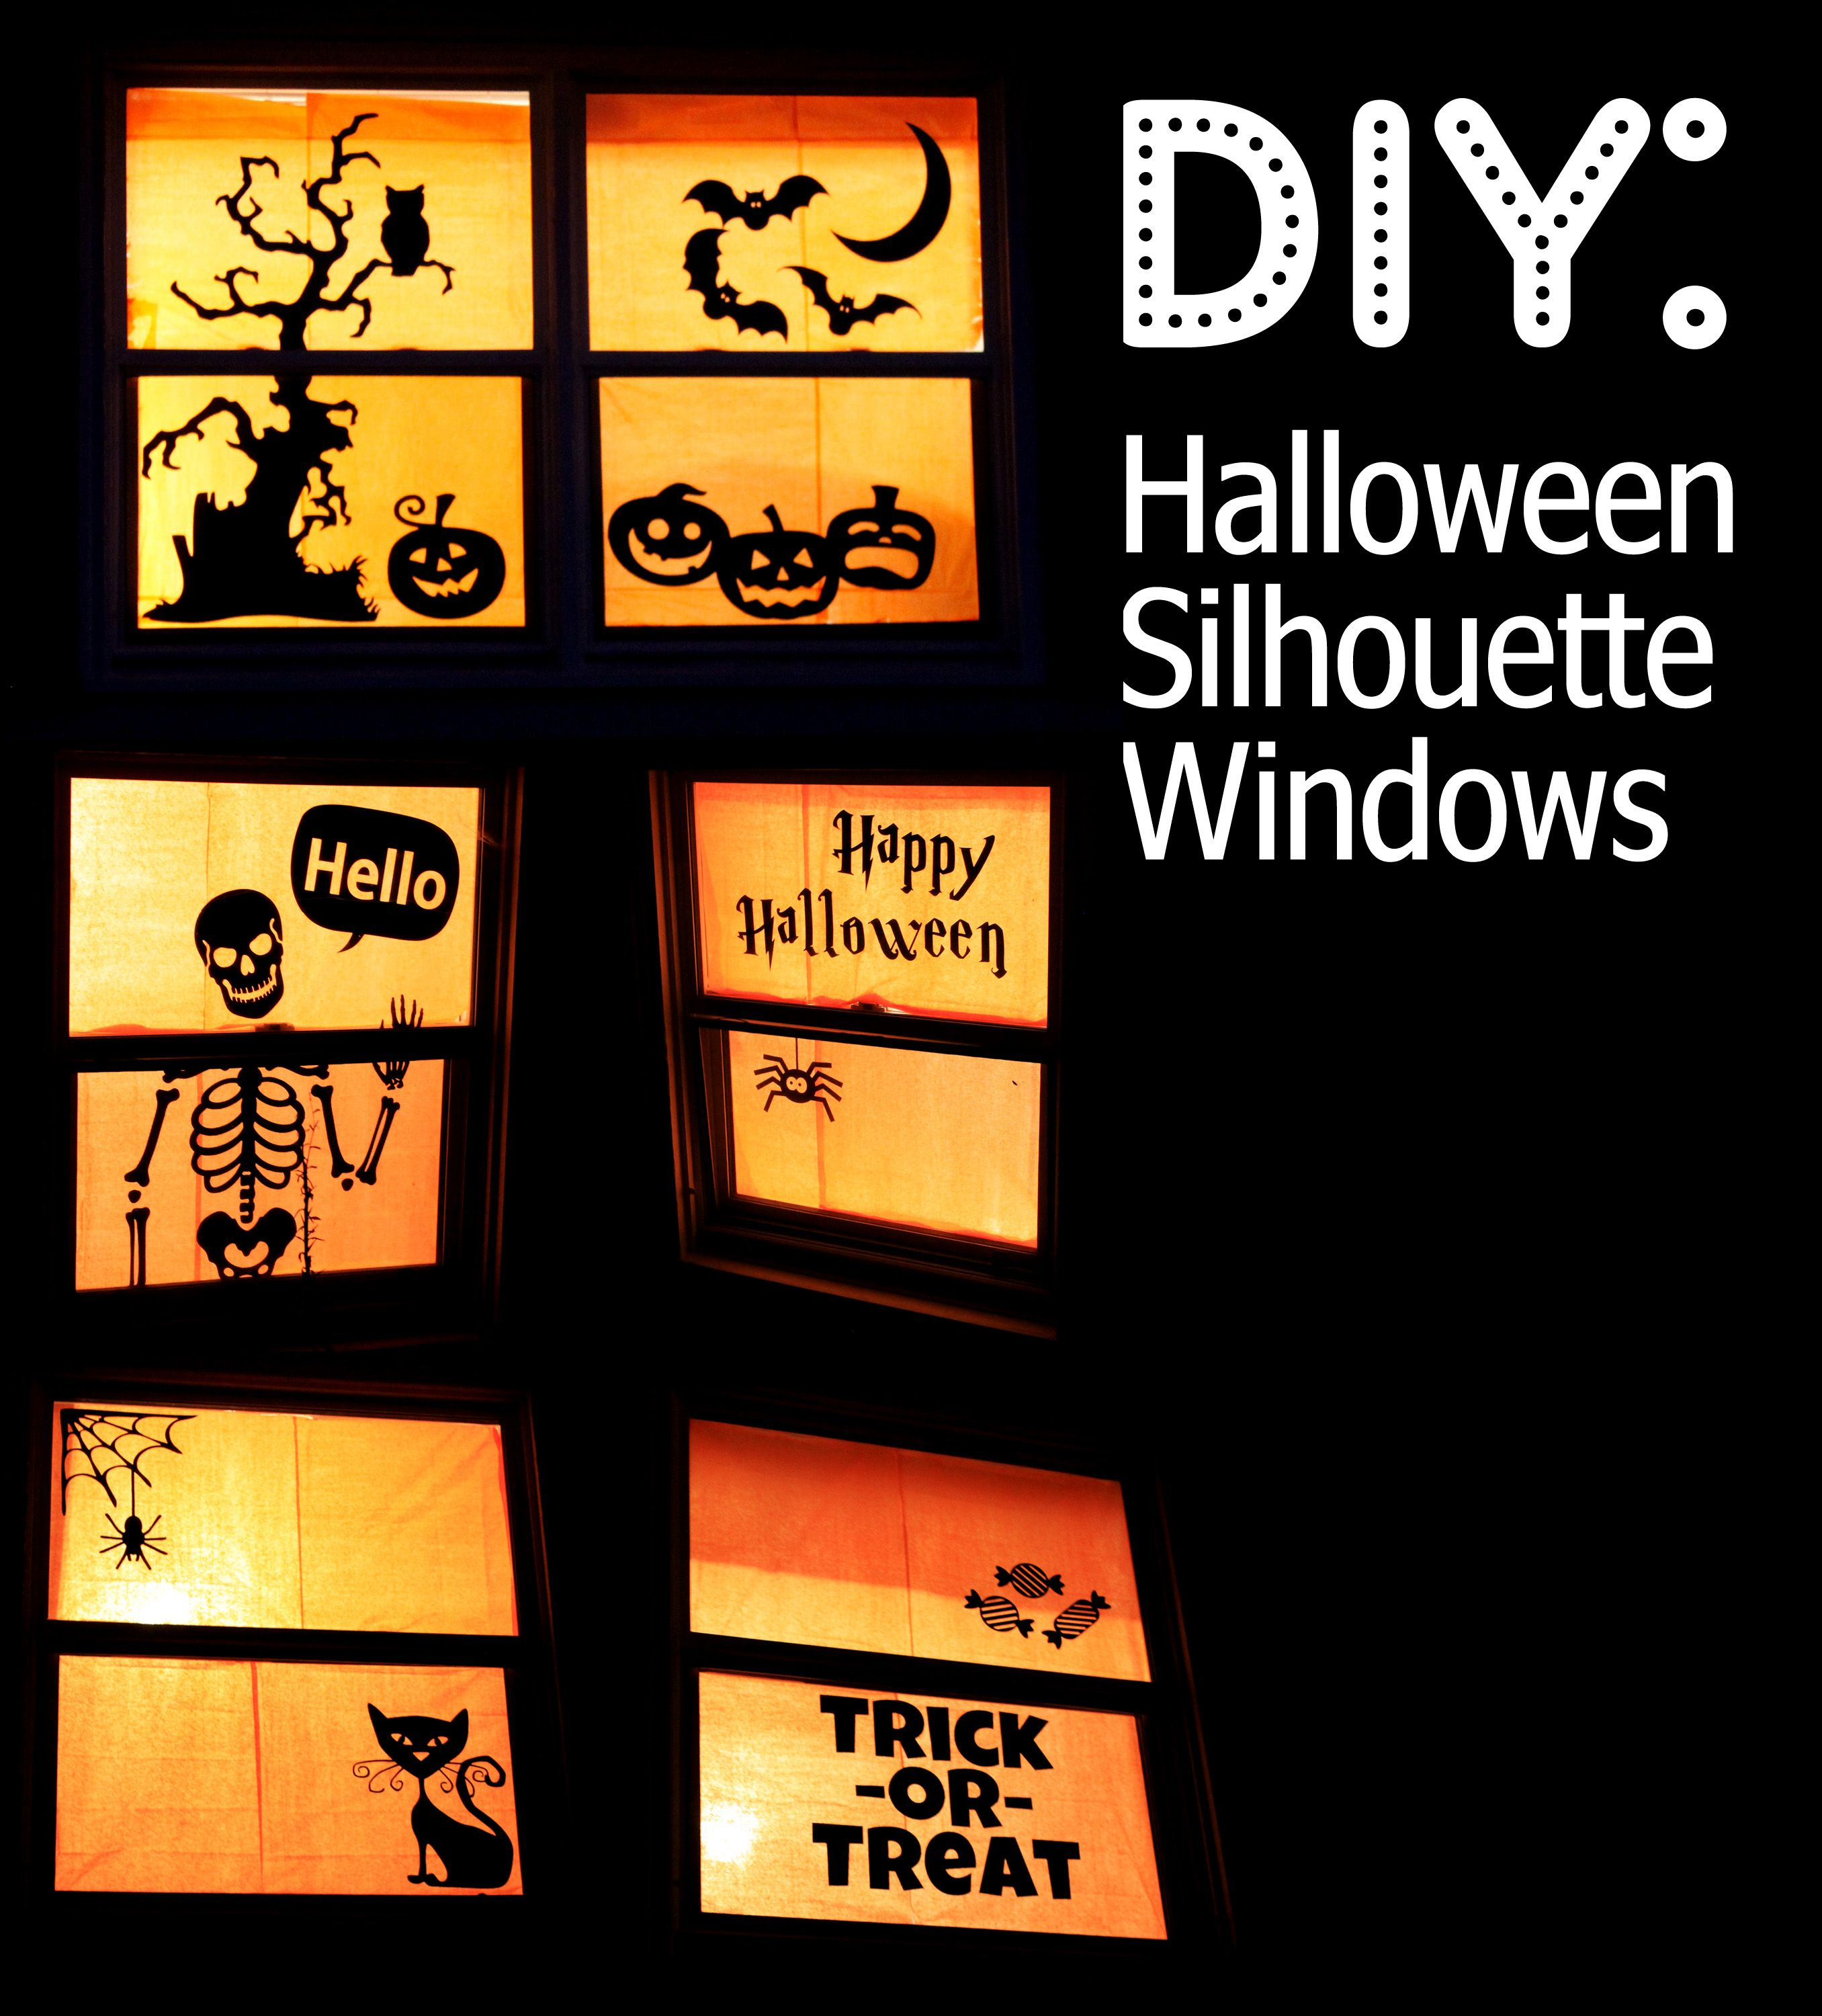 then more window really looks pin it diy far decor halloween complicated this decorations props is